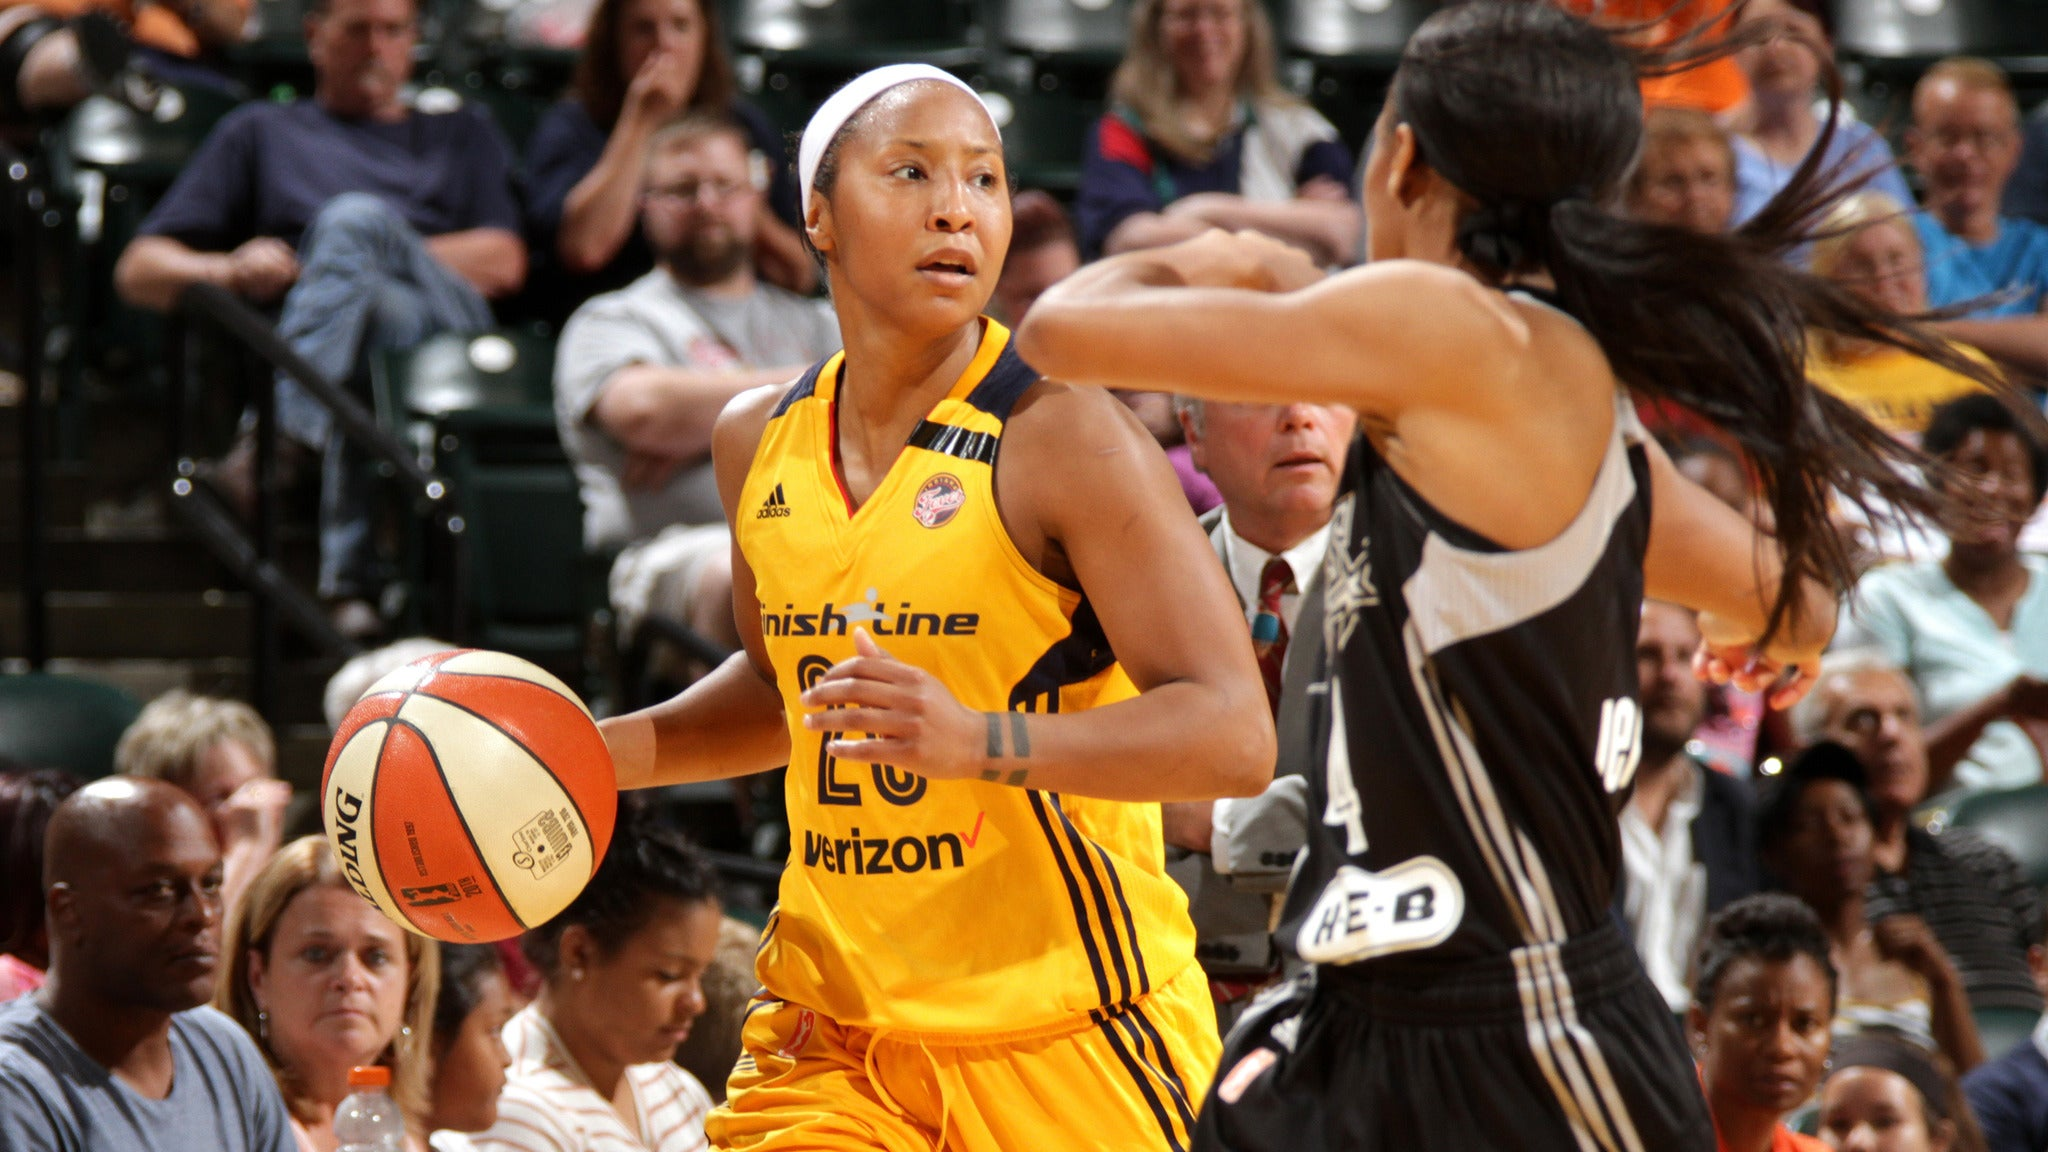 Indiana Fever vs. Chicago Sky at Bankers Life Fieldhouse